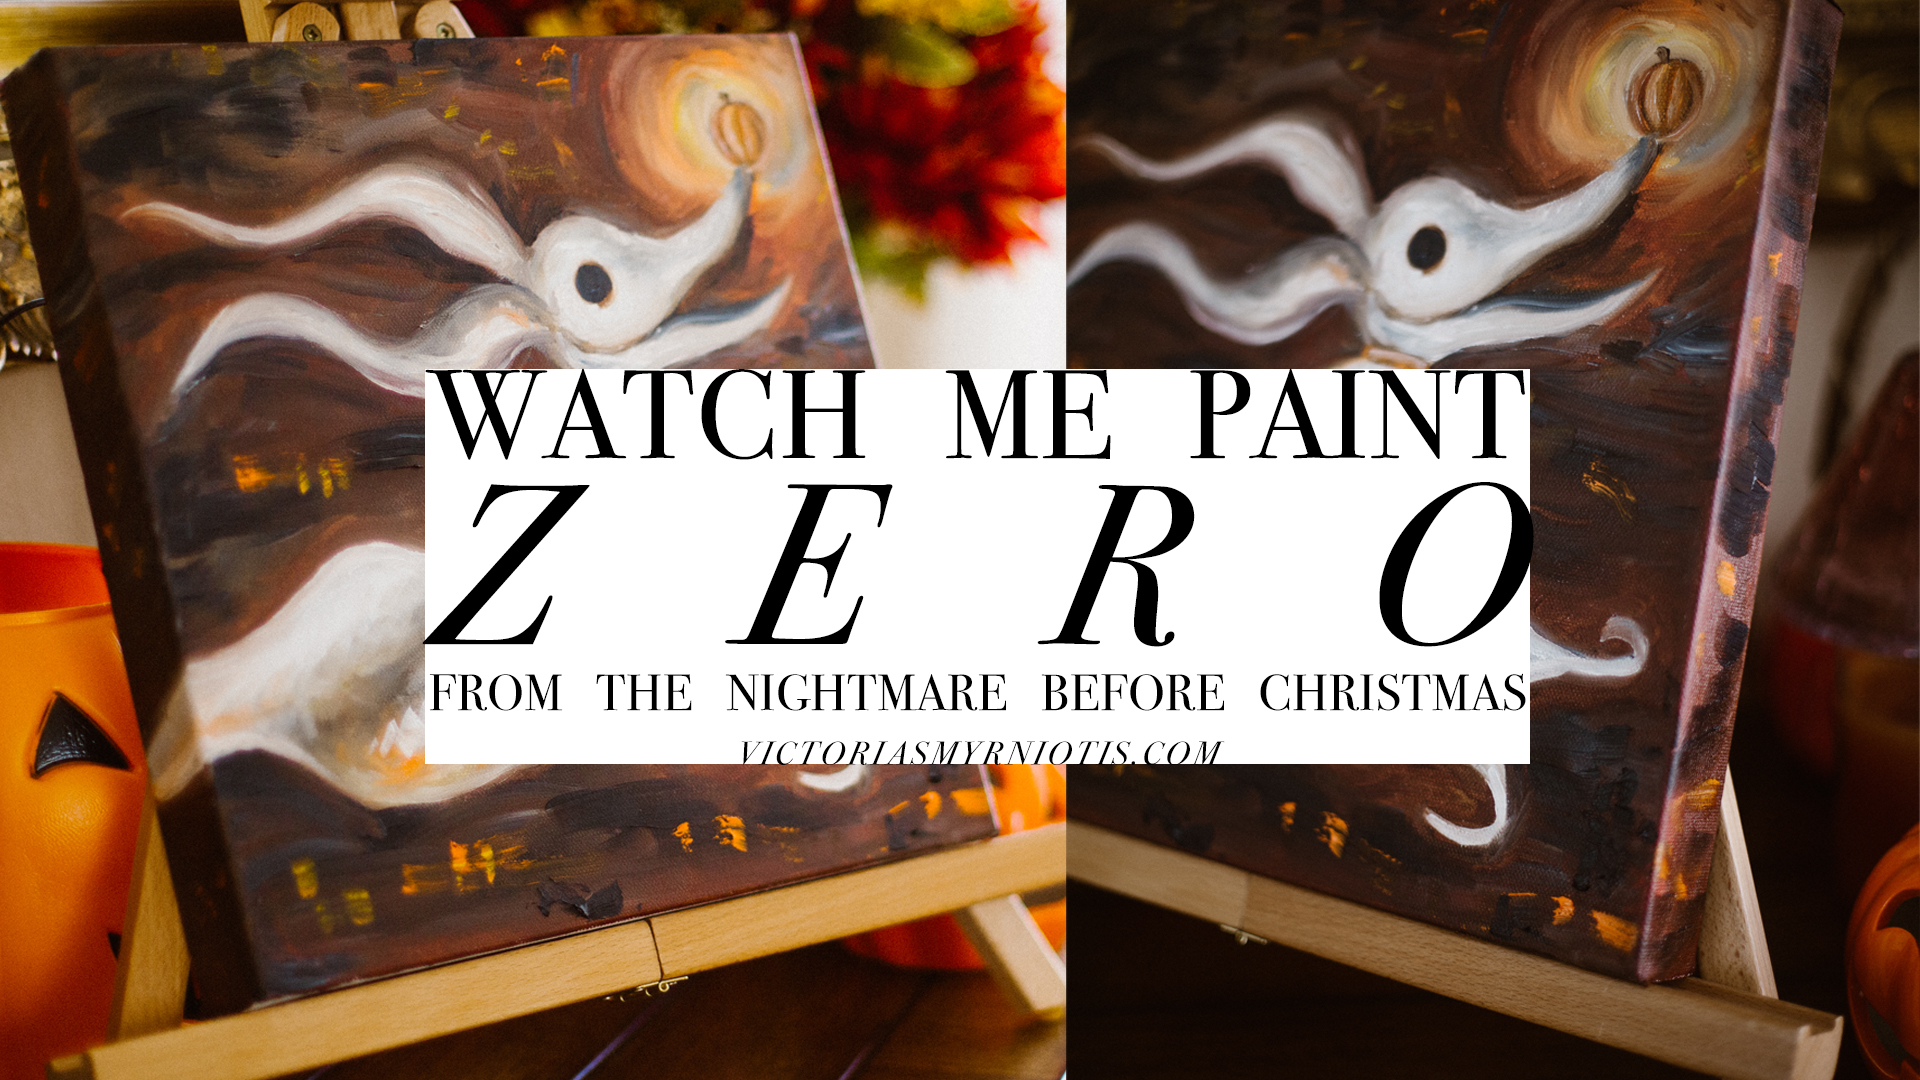 Watch Me Paint Zero from Nightmare Before Christmas by Victoria Smyrniotis